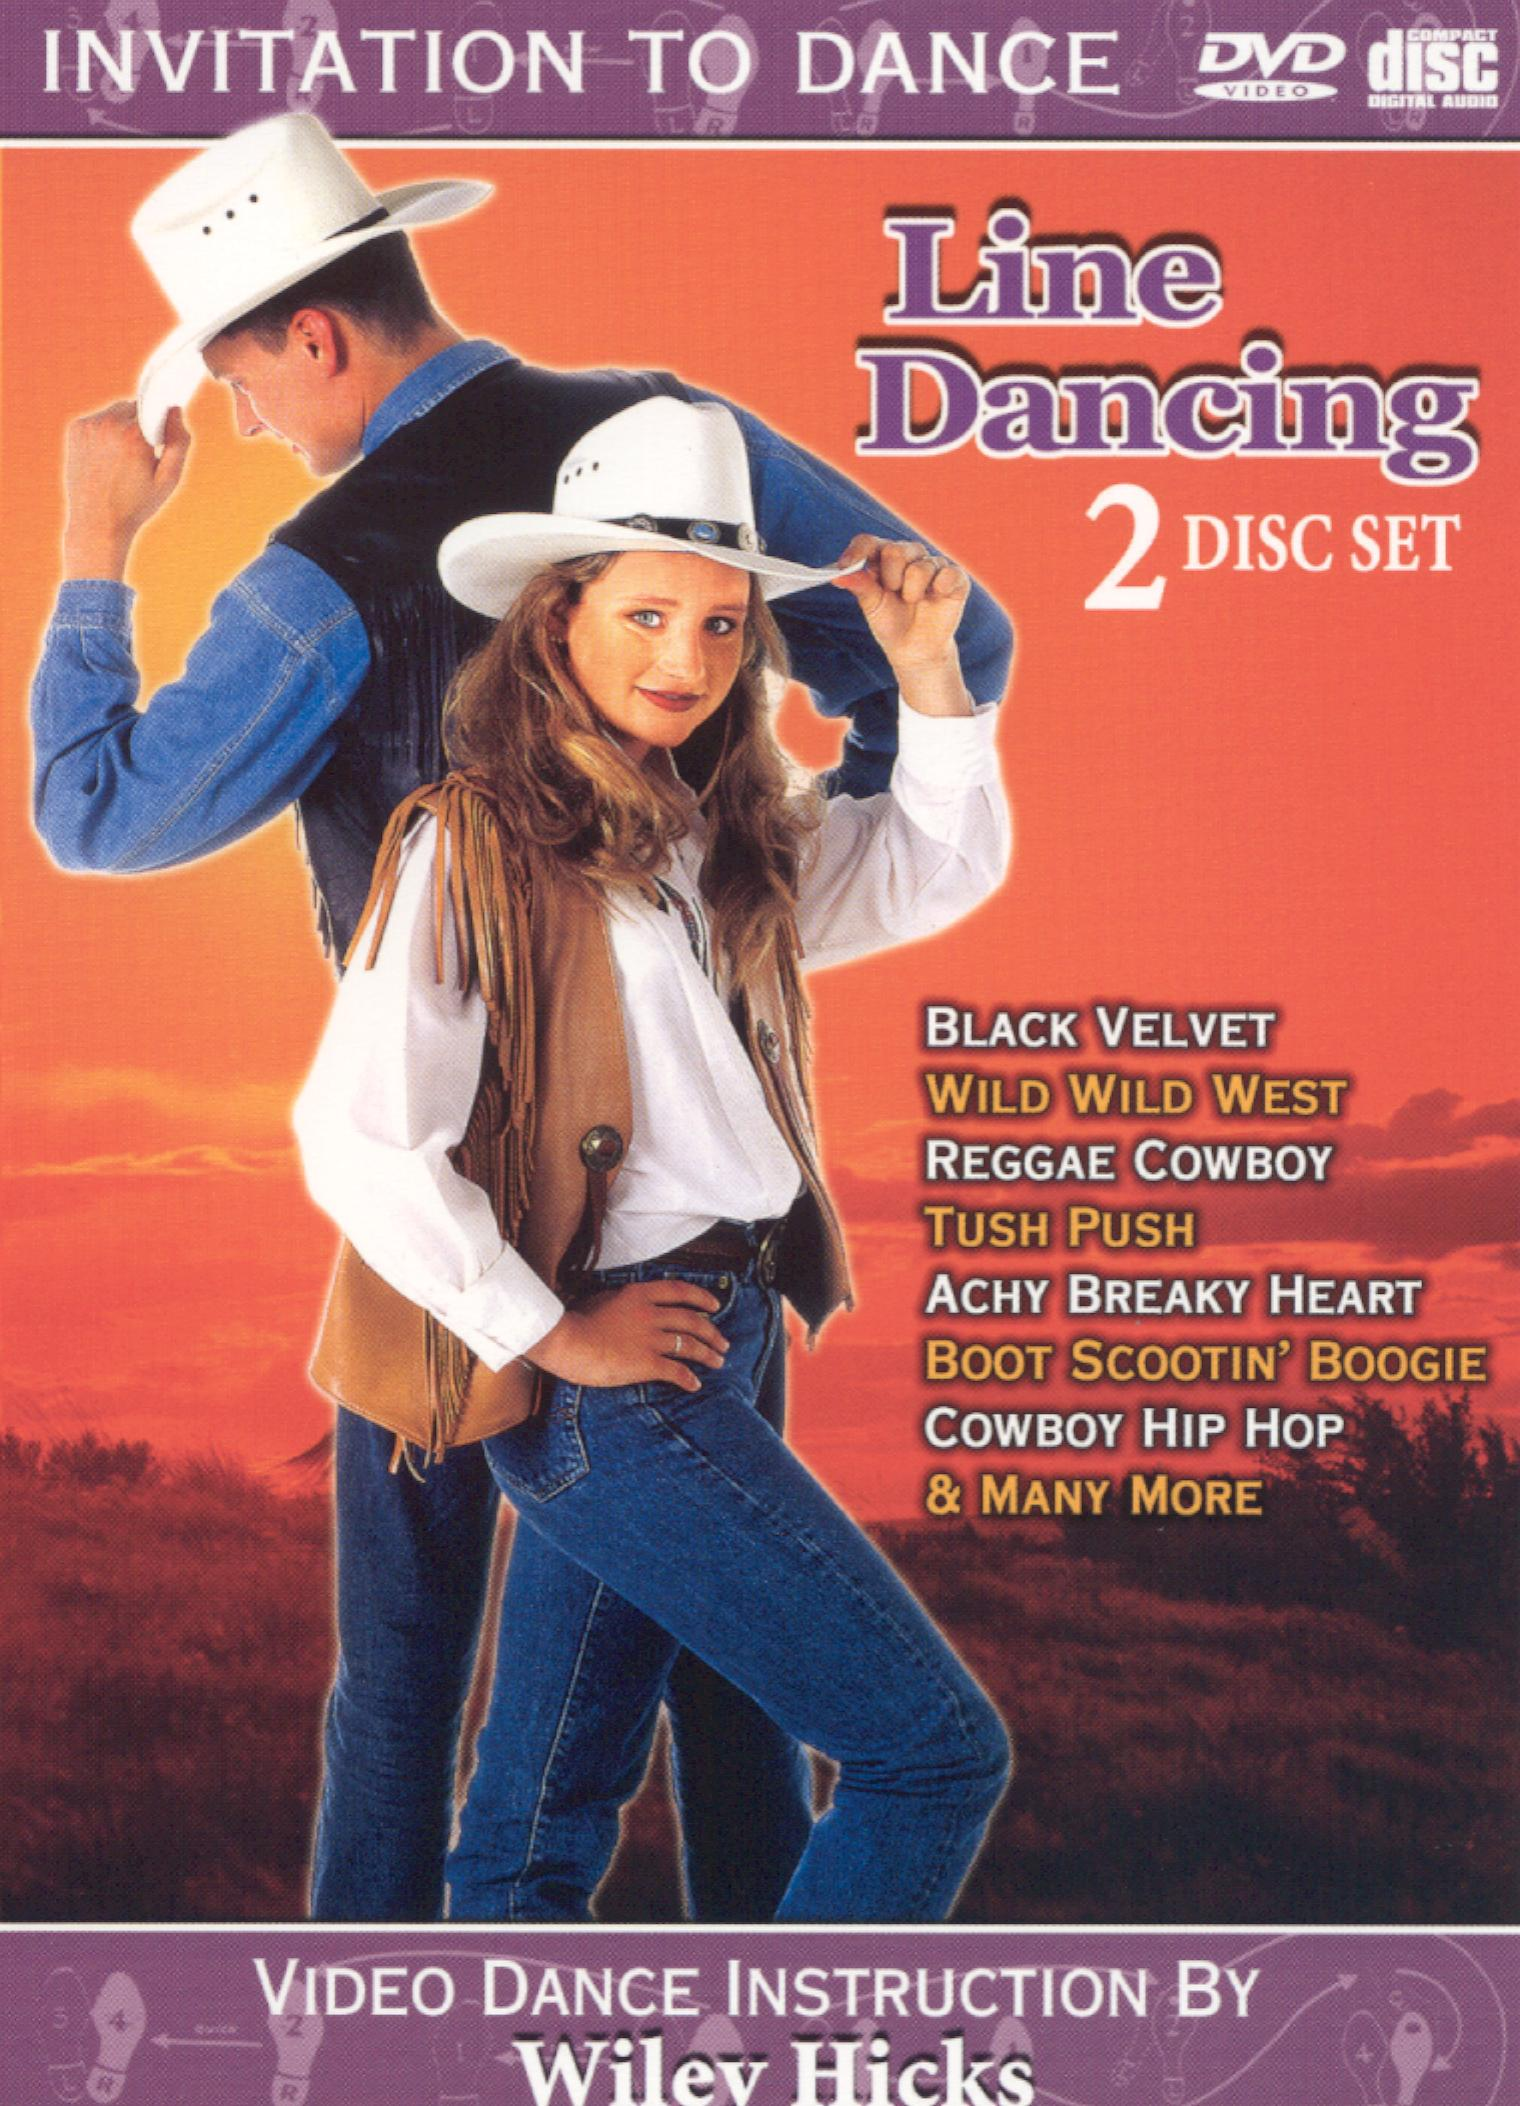 Invitation to Dance: Line Dancing